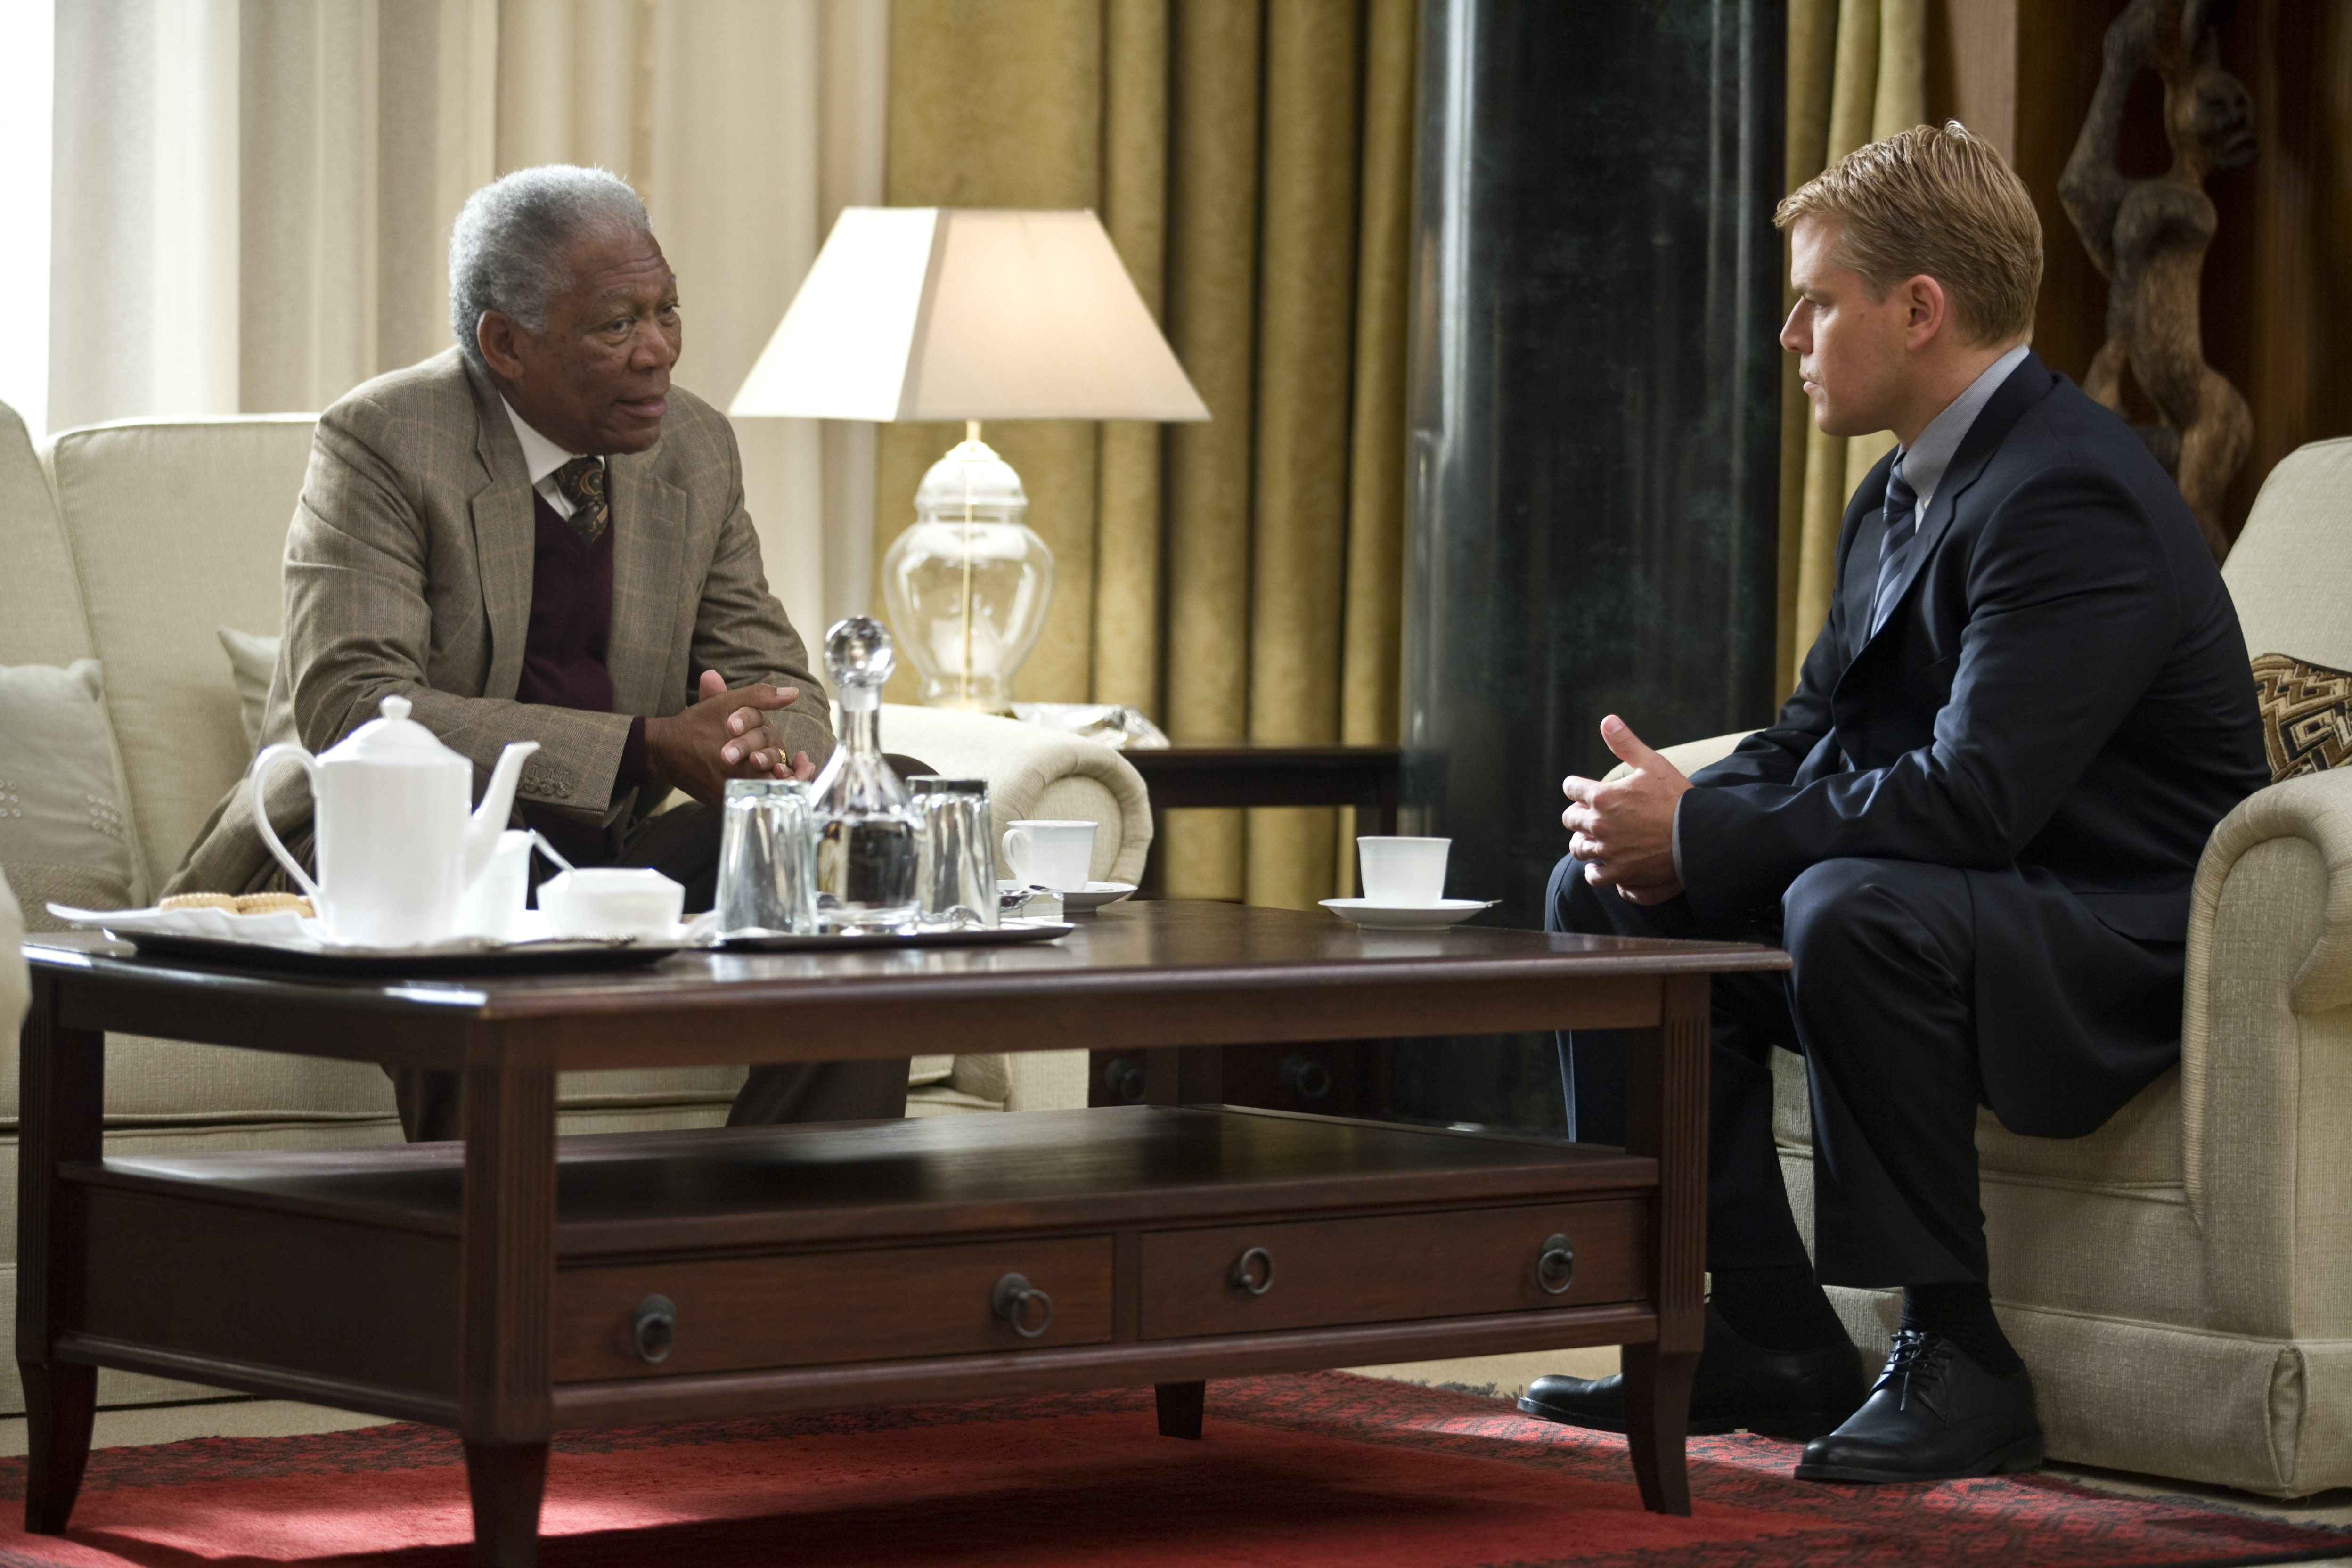 nelson mandela in the movie invictus history essay Similar documents to invictus and ransom study notes  2 pages personality study: nelson mandela speech  modern history nelson mandela rise to prominence speech completed in 2015 18/20 for personality study on nelson mandela  an essay exploring the concepts of revenge as seen in clint eastwood's film invictus and david malouf's novel.